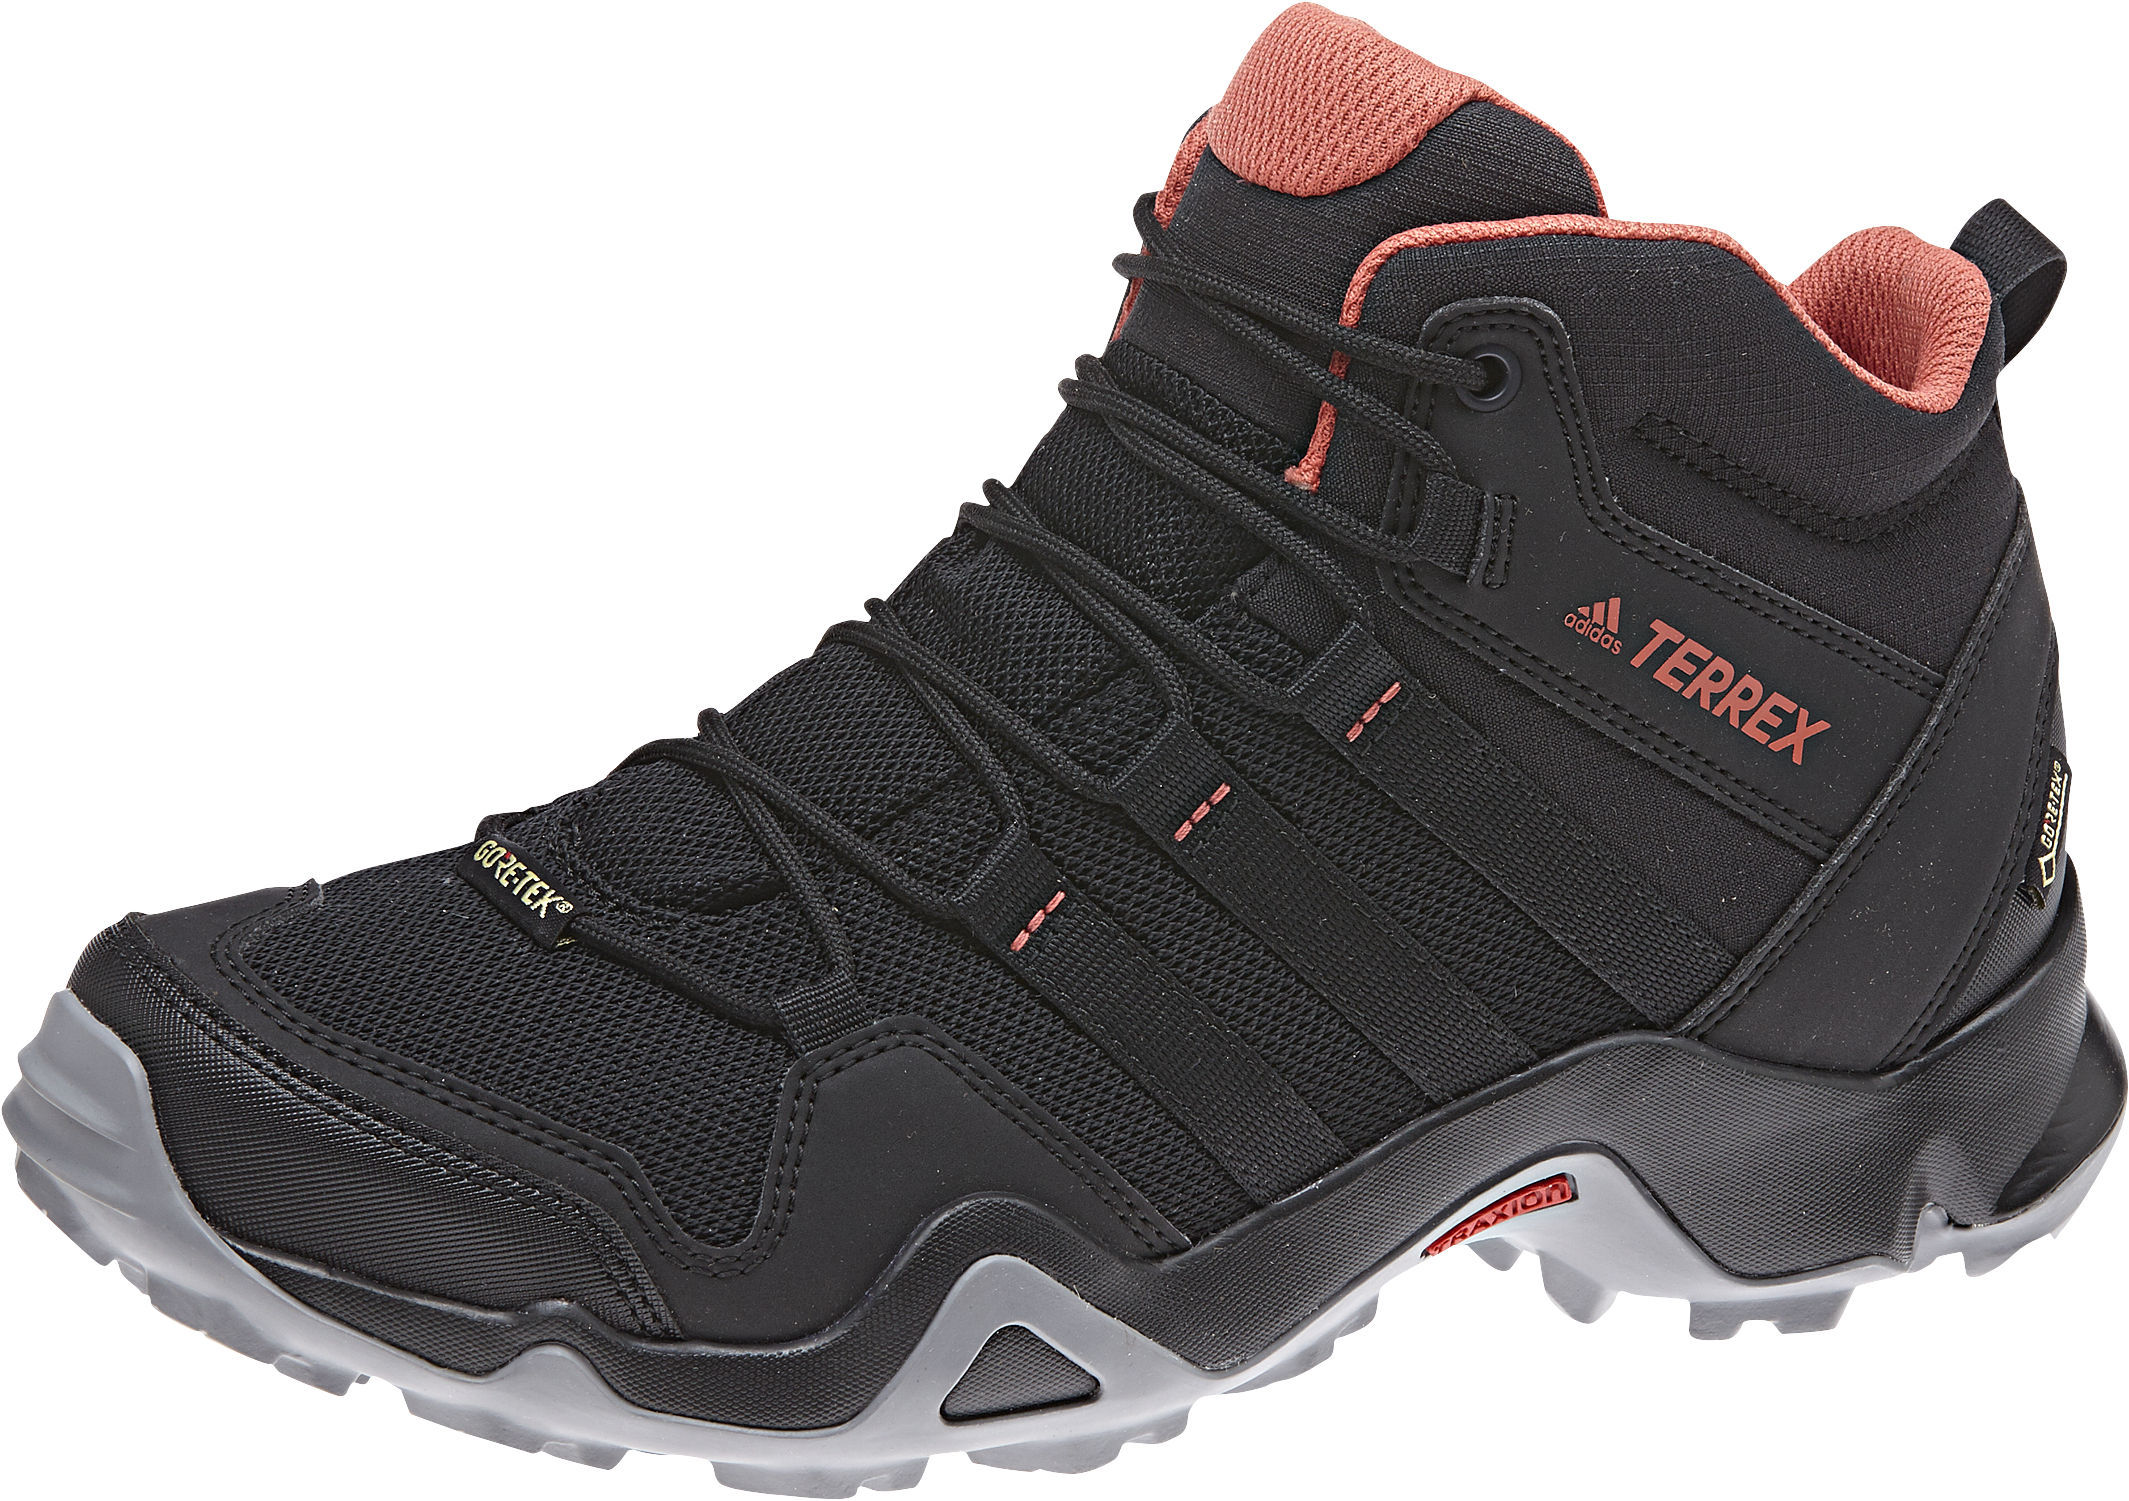 newest collection 311cc 940a6 Be the First to Review the Adidas Outdoor Terrex AX2R Mid GTX Hiking Shoes  - Womens — Page 1